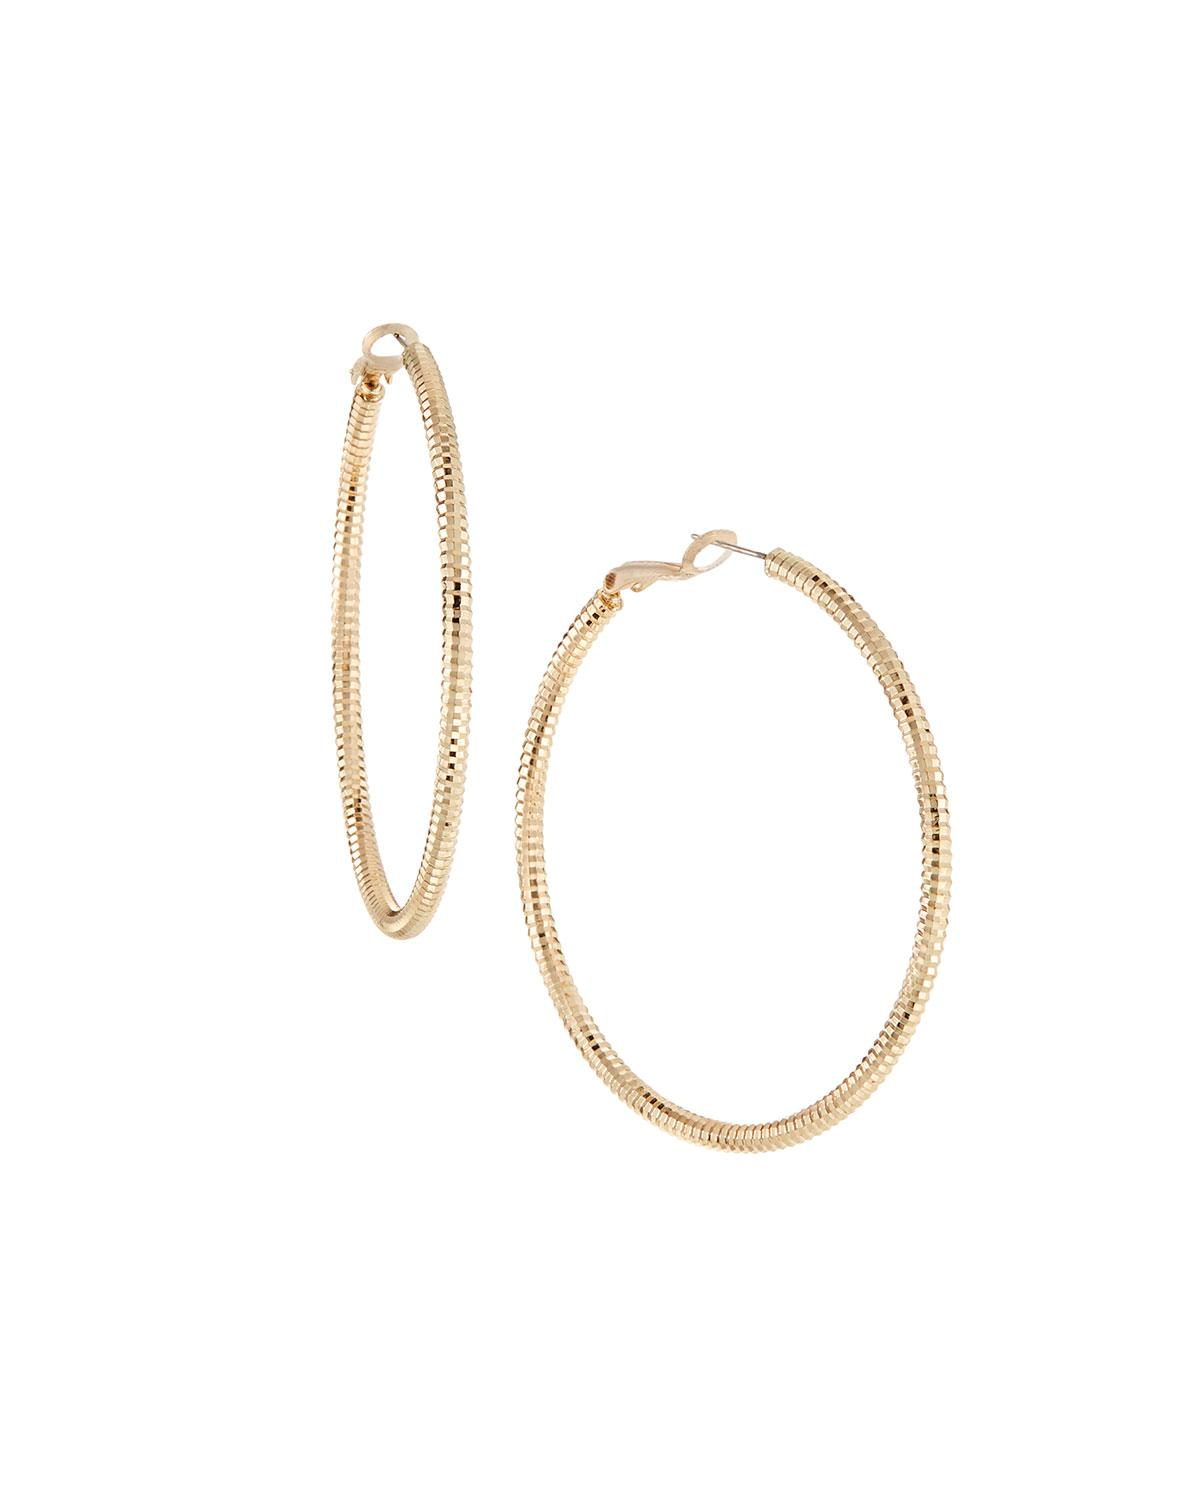 Panacea Multicolor Textured Hoop Earrings Lyst View Fullscreen